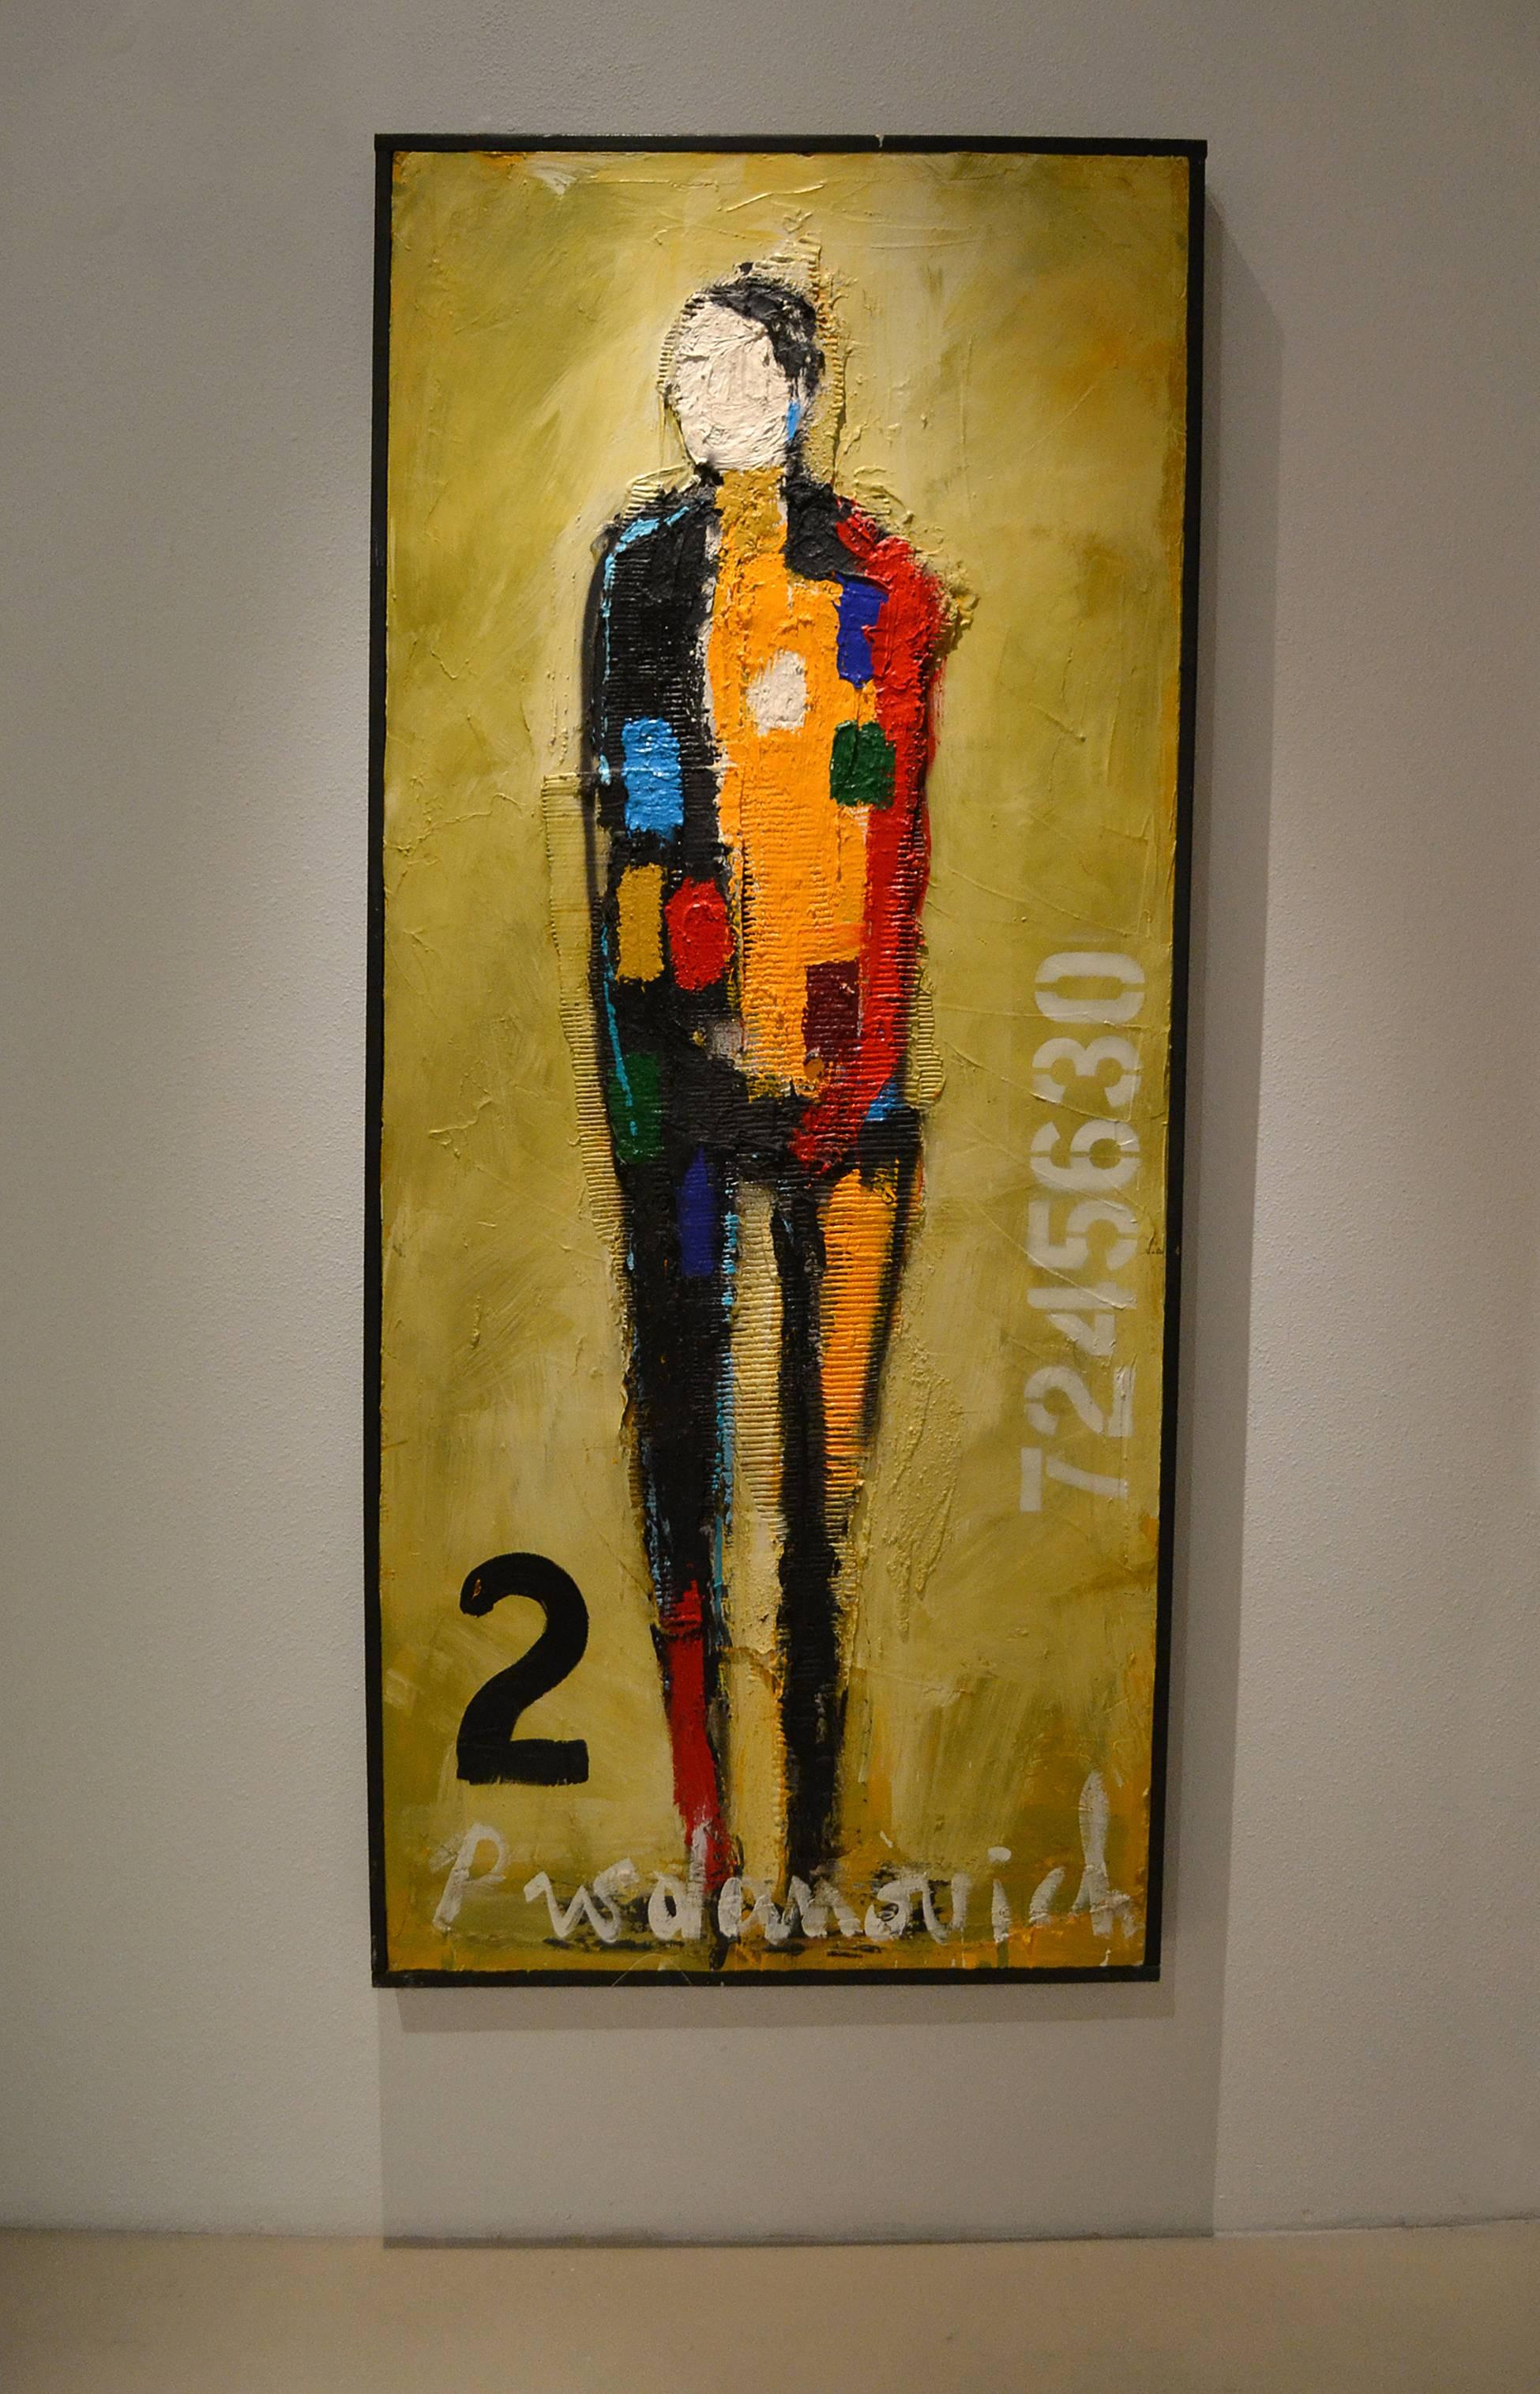 Figurative with No. 2 by Vladimir Prodanovich For Sale at 1stdibs